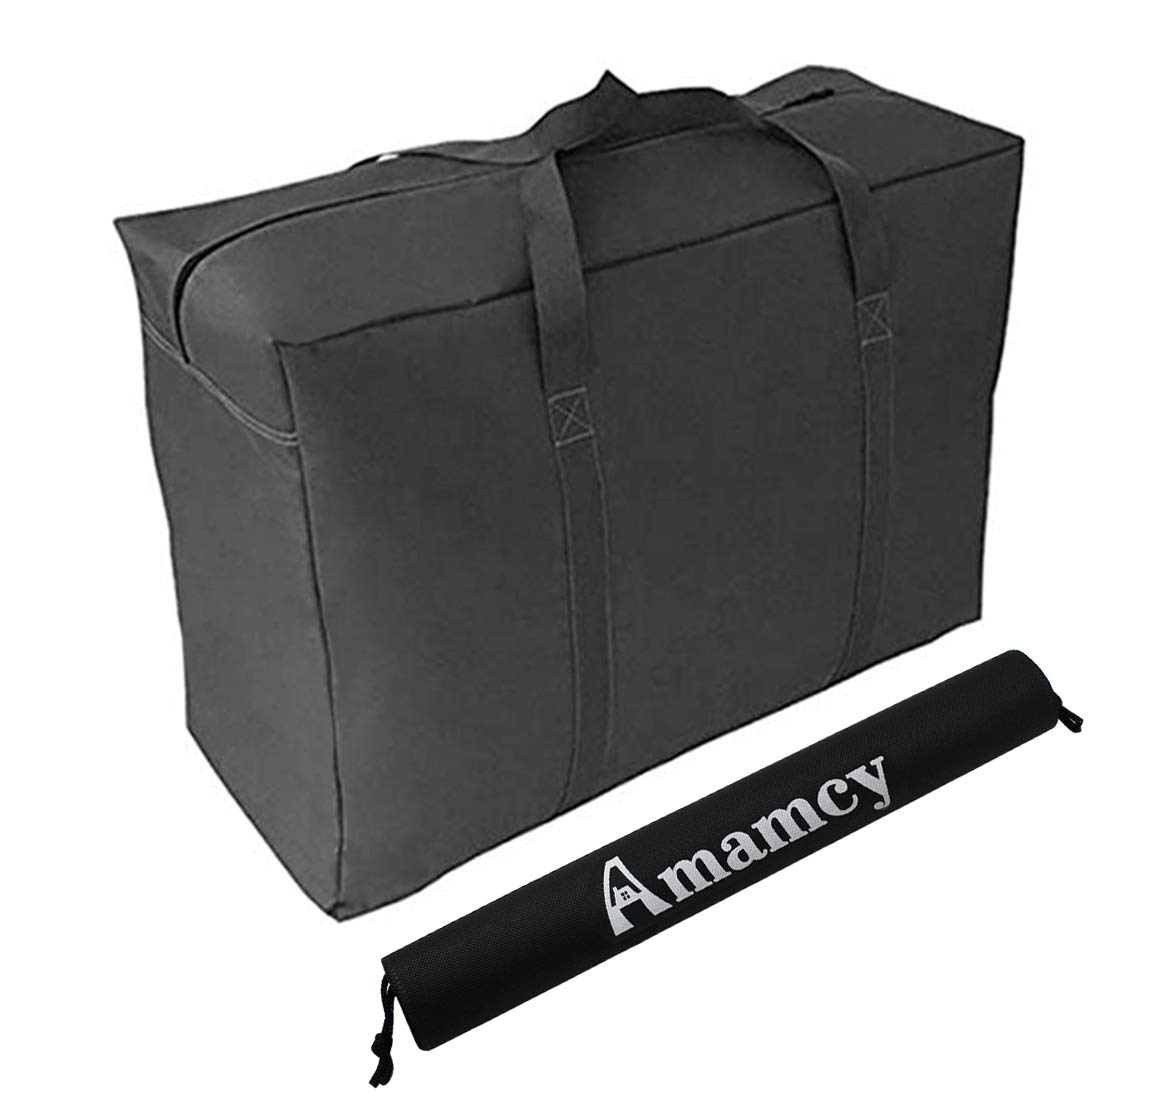 Amamcy Extra Large Over-Sized Handy Storage Bag Waterproof Heavy Duty Oxford Travel Luggage Caddy Organizer Reusable Laundry Bags Duffel Space Saver with Web Handles for Quilt Beddings Blanket